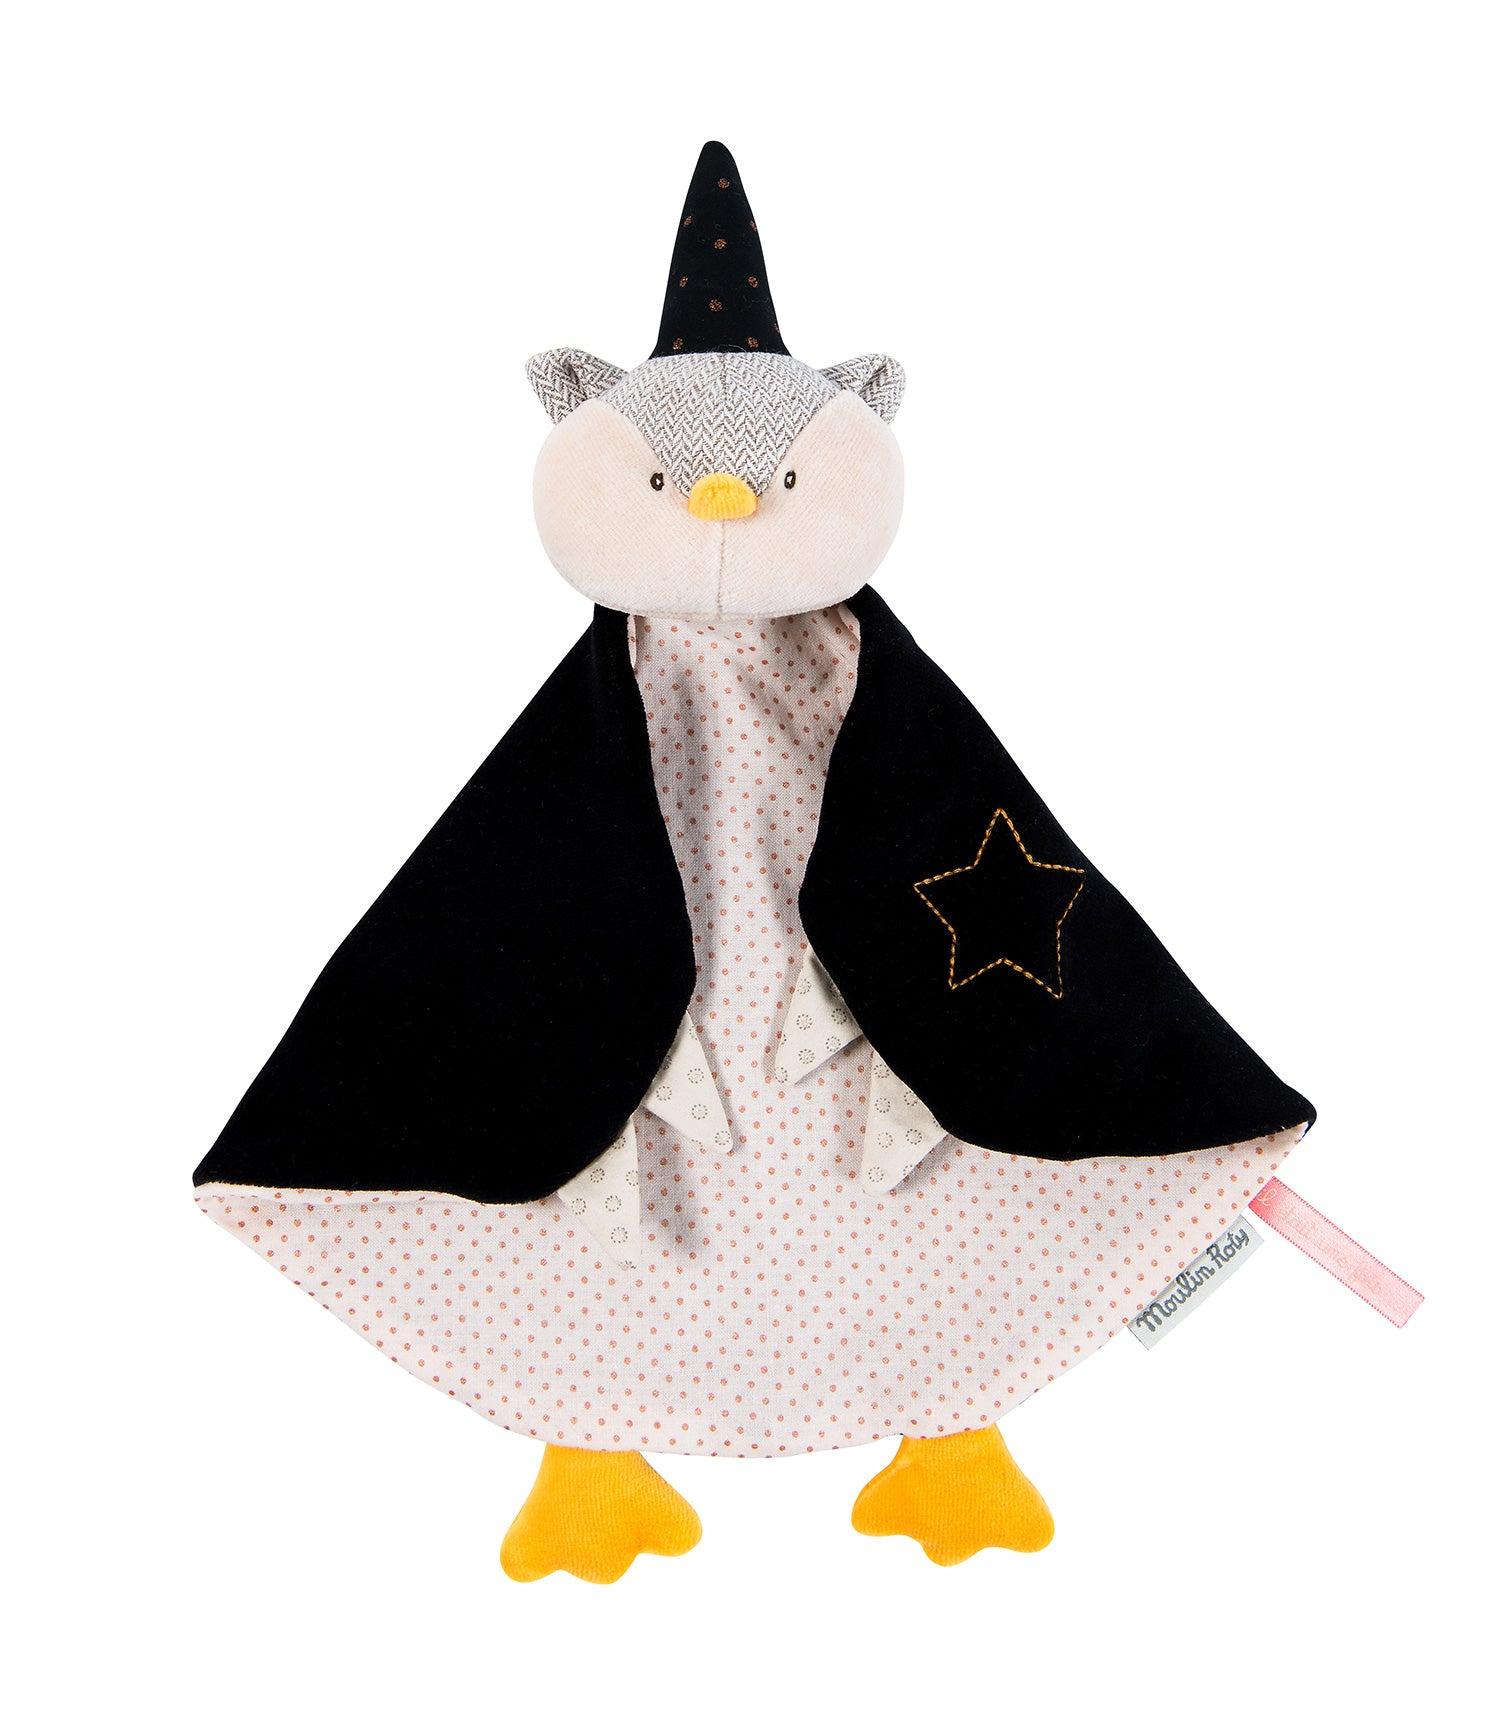 An owl magician in velvet, cotton and tweed, wearing a gold-spotted pointy black hat with his large wings as a cape to wrap around and watch over baby.